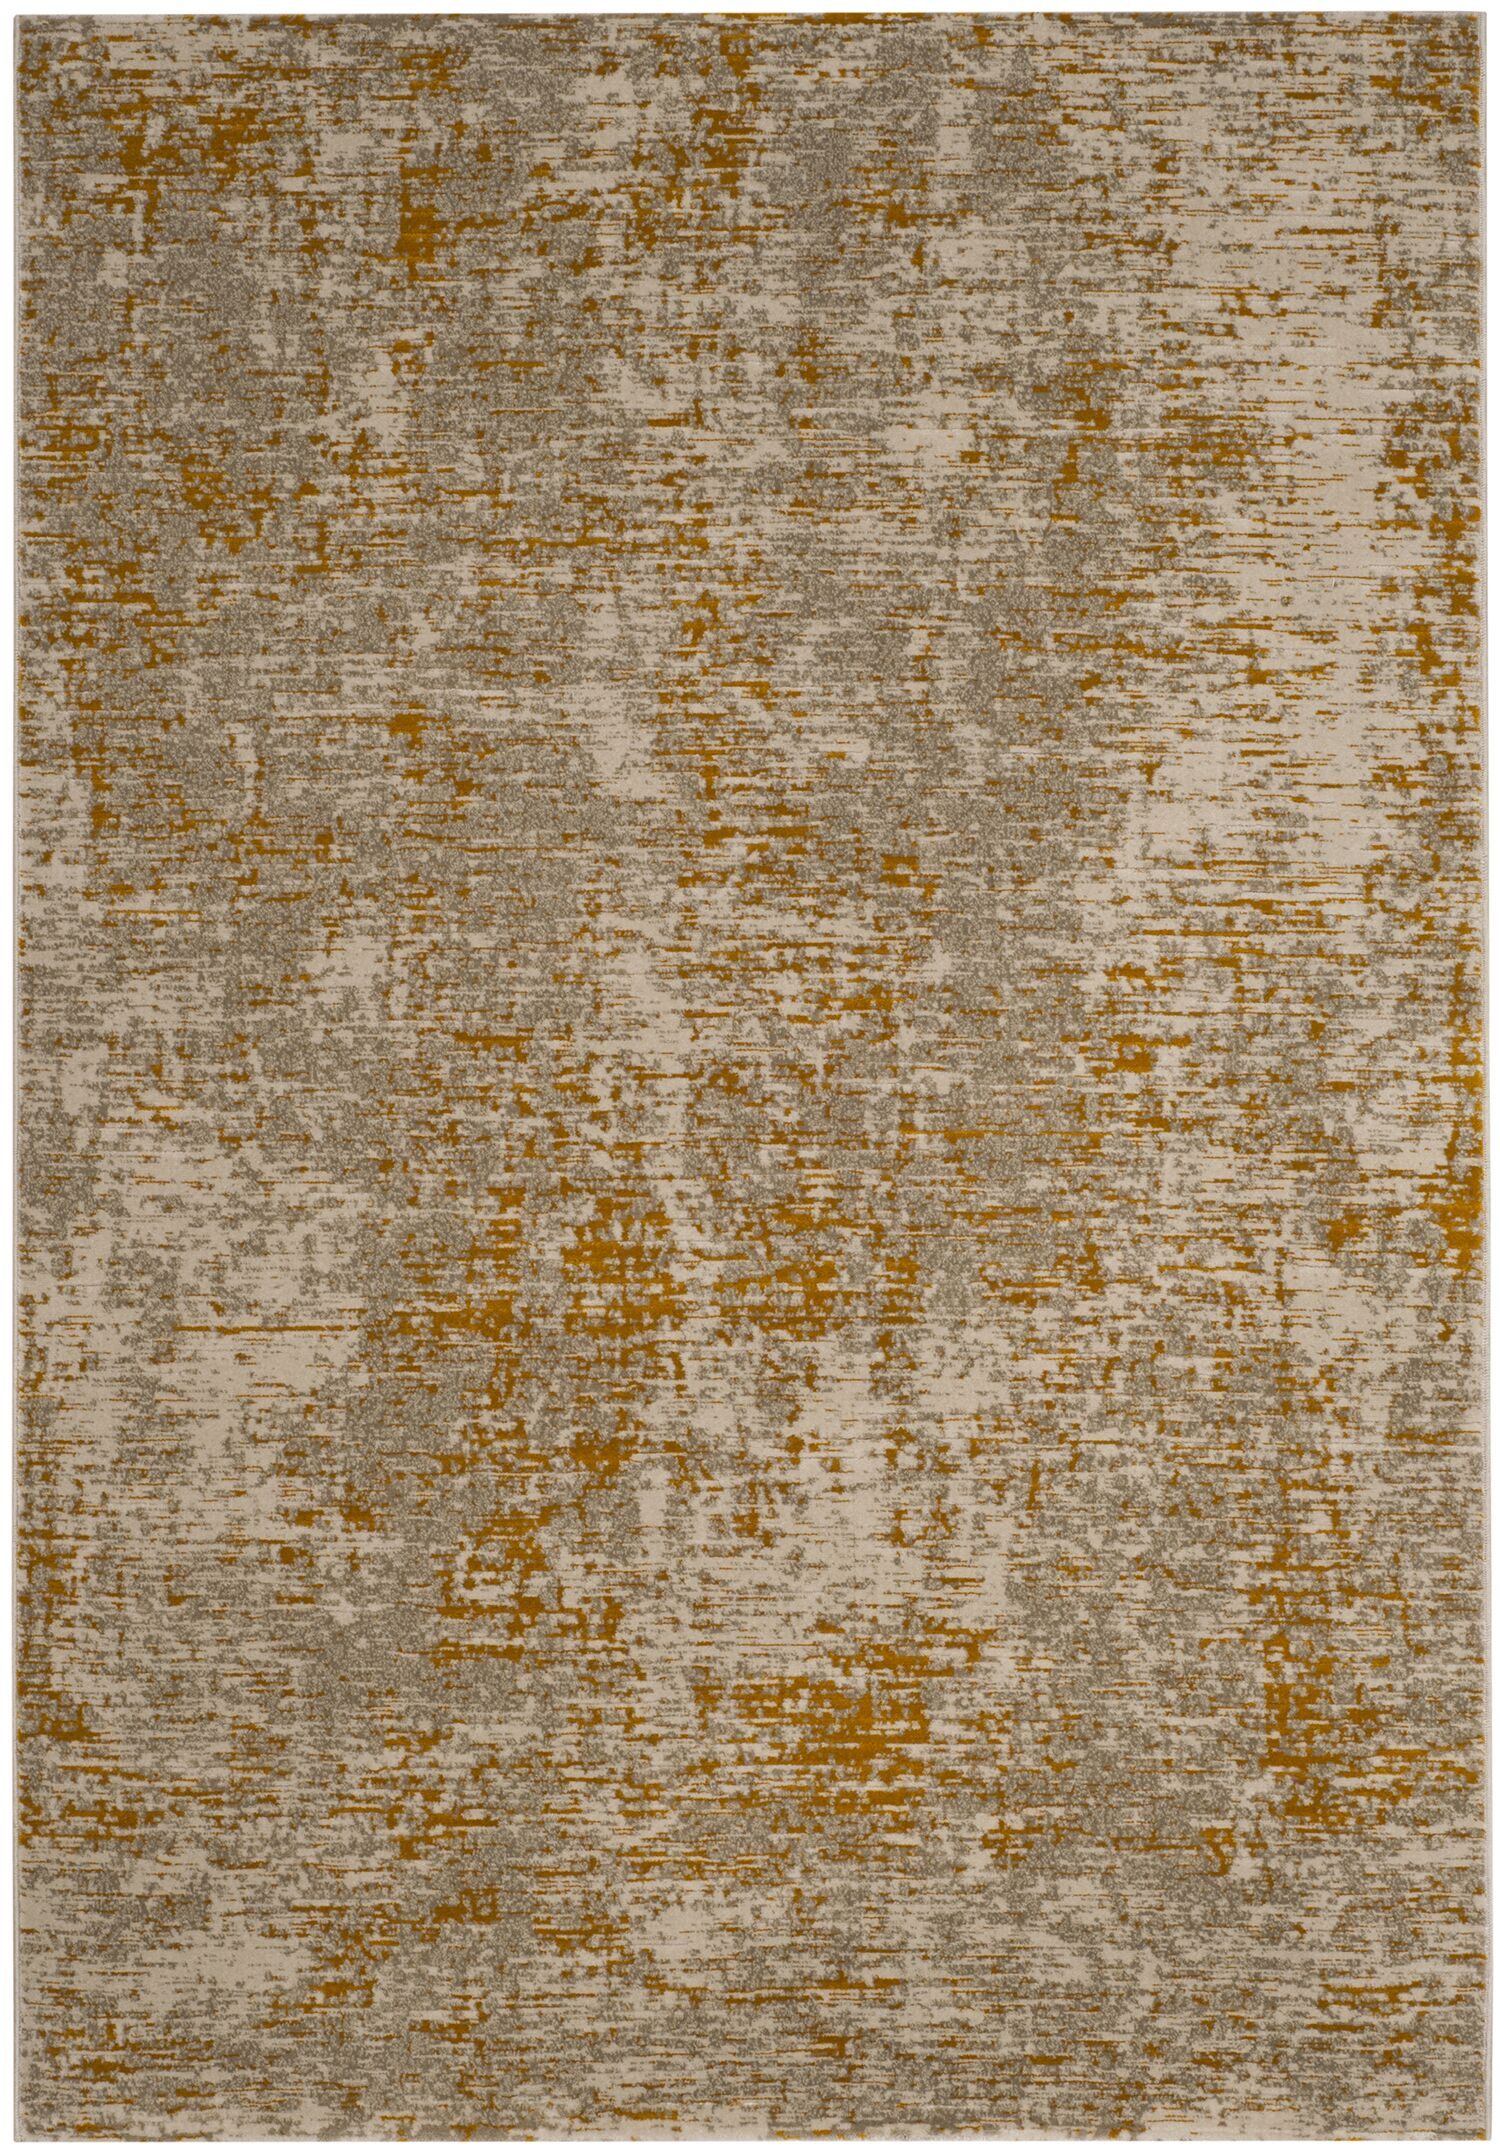 Sorrentino Gray/Orange Area Rug Rug Size: Round 6'7